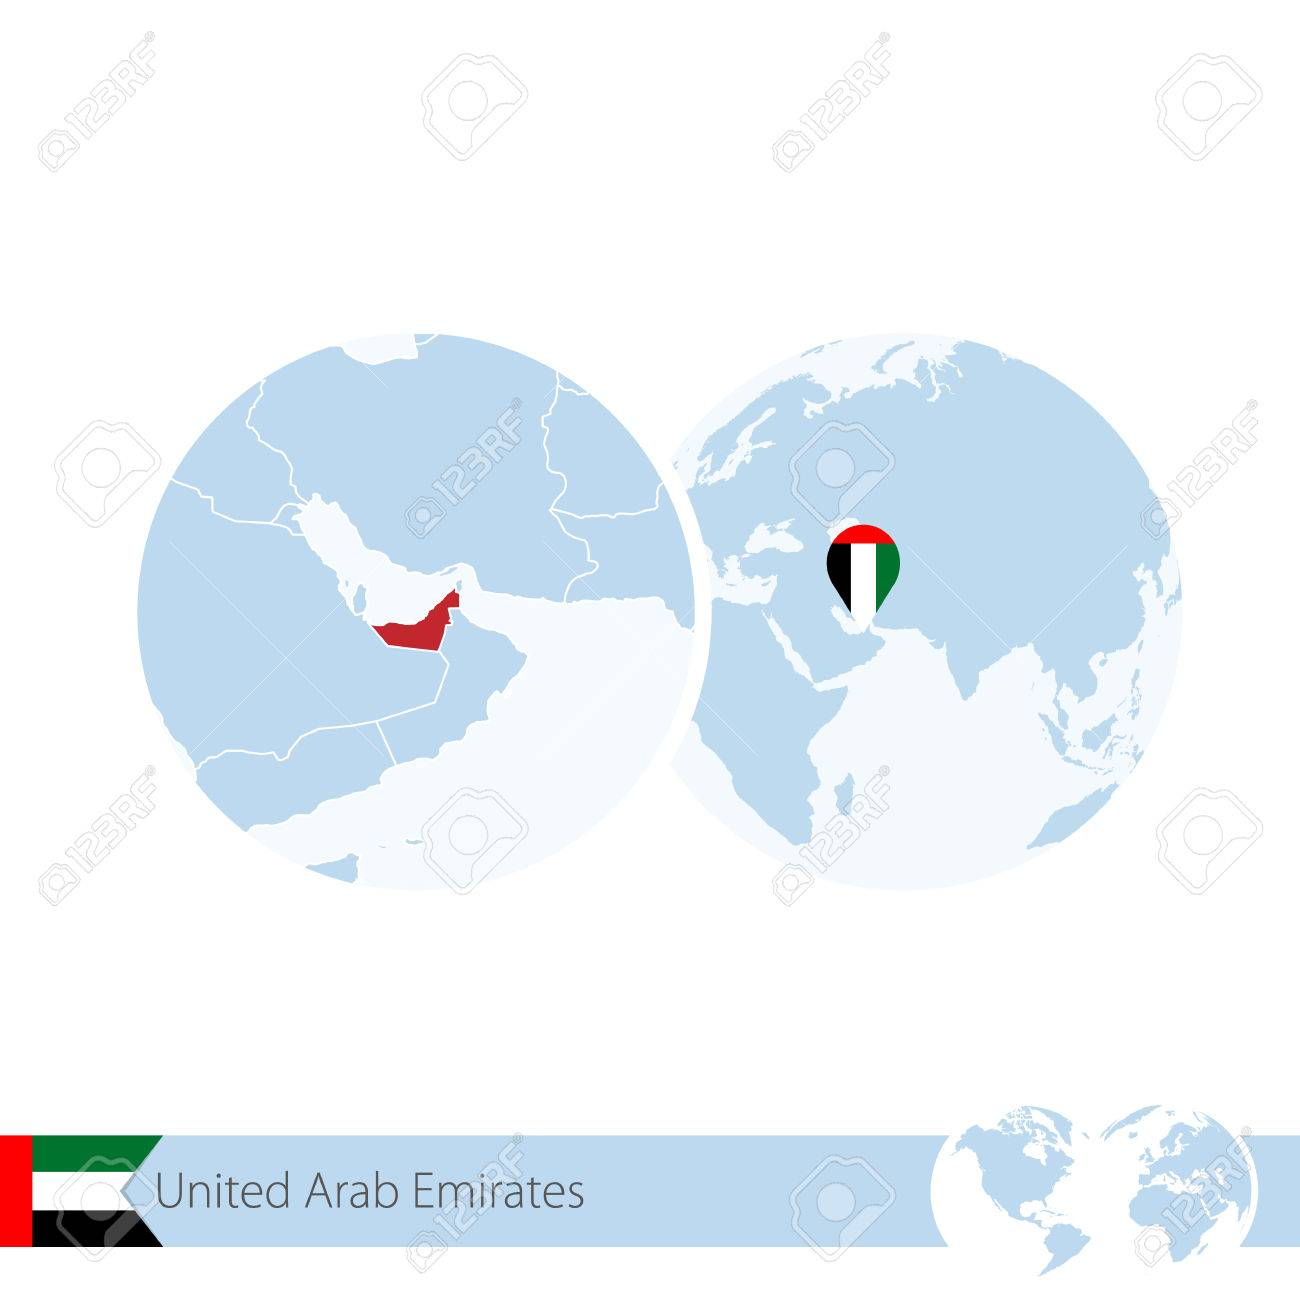 Picture of: United Arab Emirates On World Globe With Flag And Regional Map Royalty Free Cliparts Vectors And Stock Illustration Image 66691317